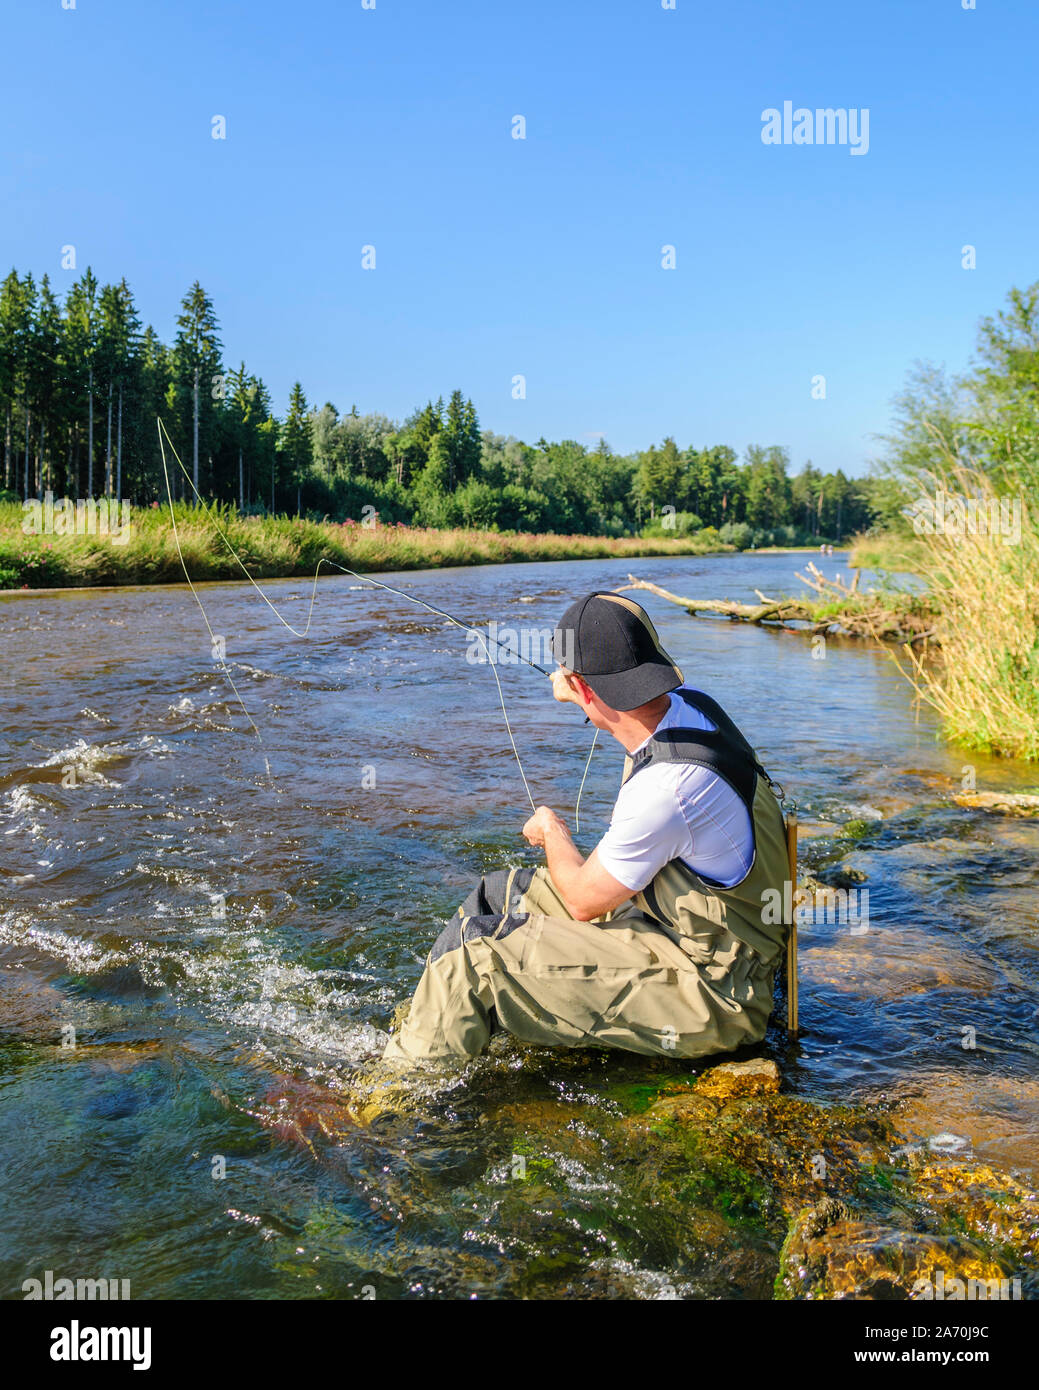 Flyfisher in action Stock Photo